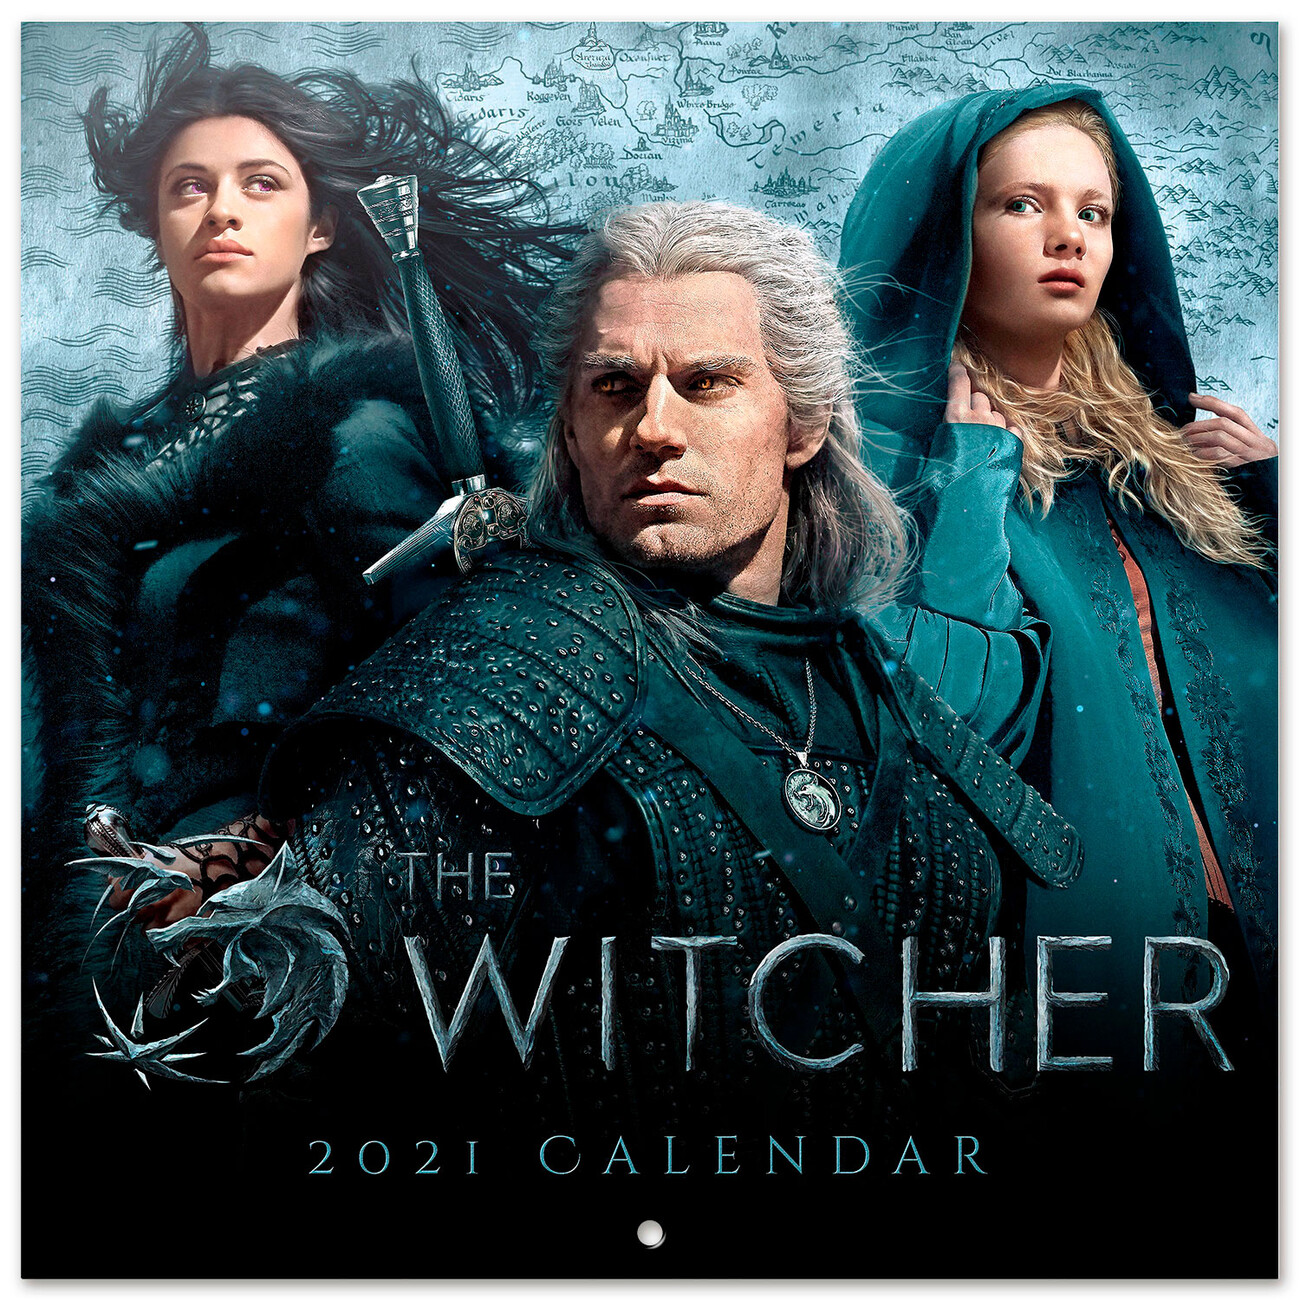 The Witcher Film 2021